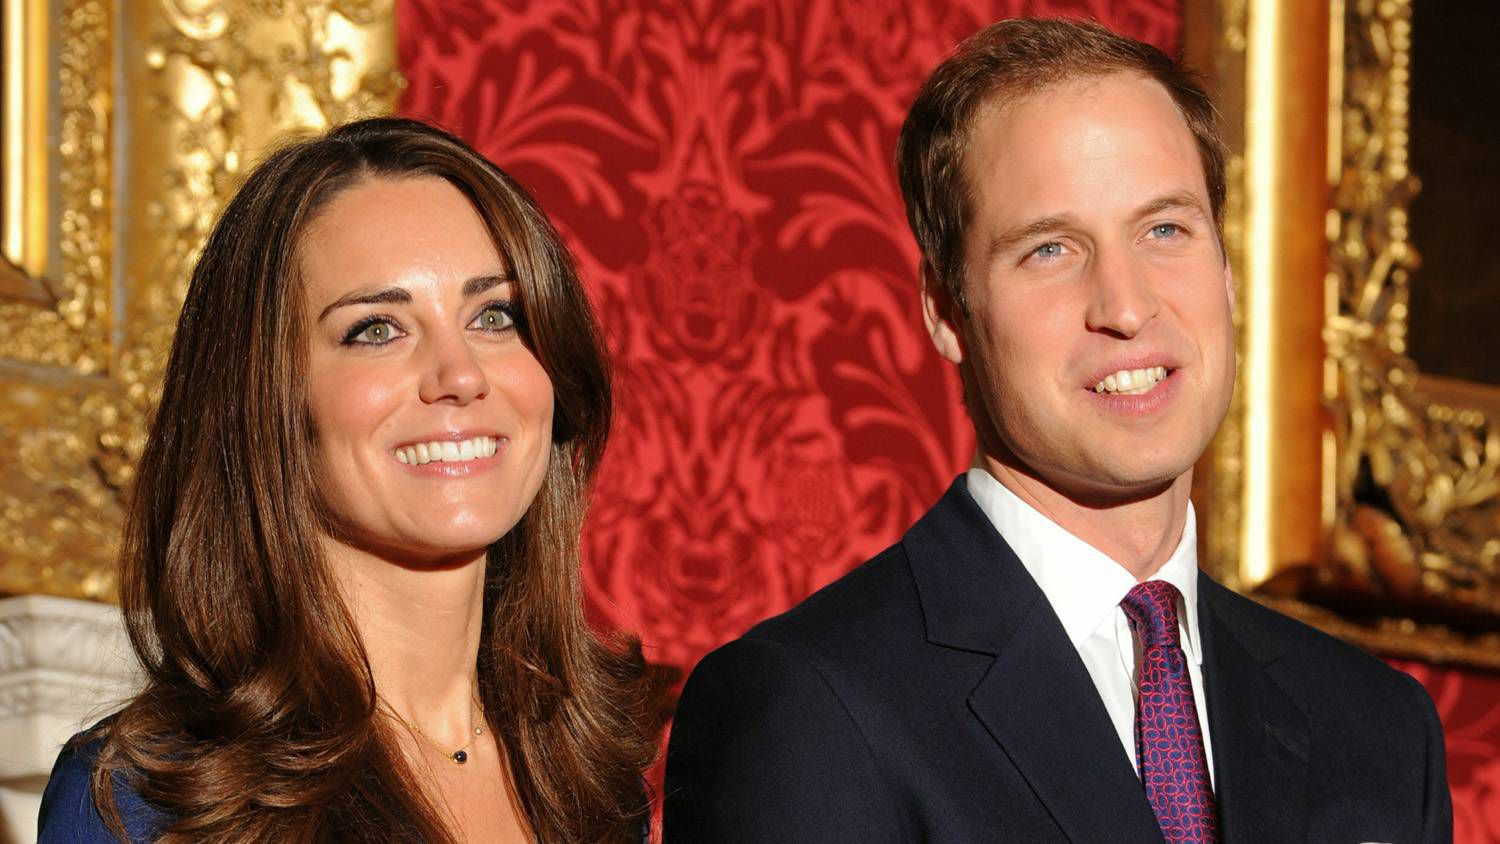 Who\'s going to pay for William and Kate\'s lavish wedding? - The ...